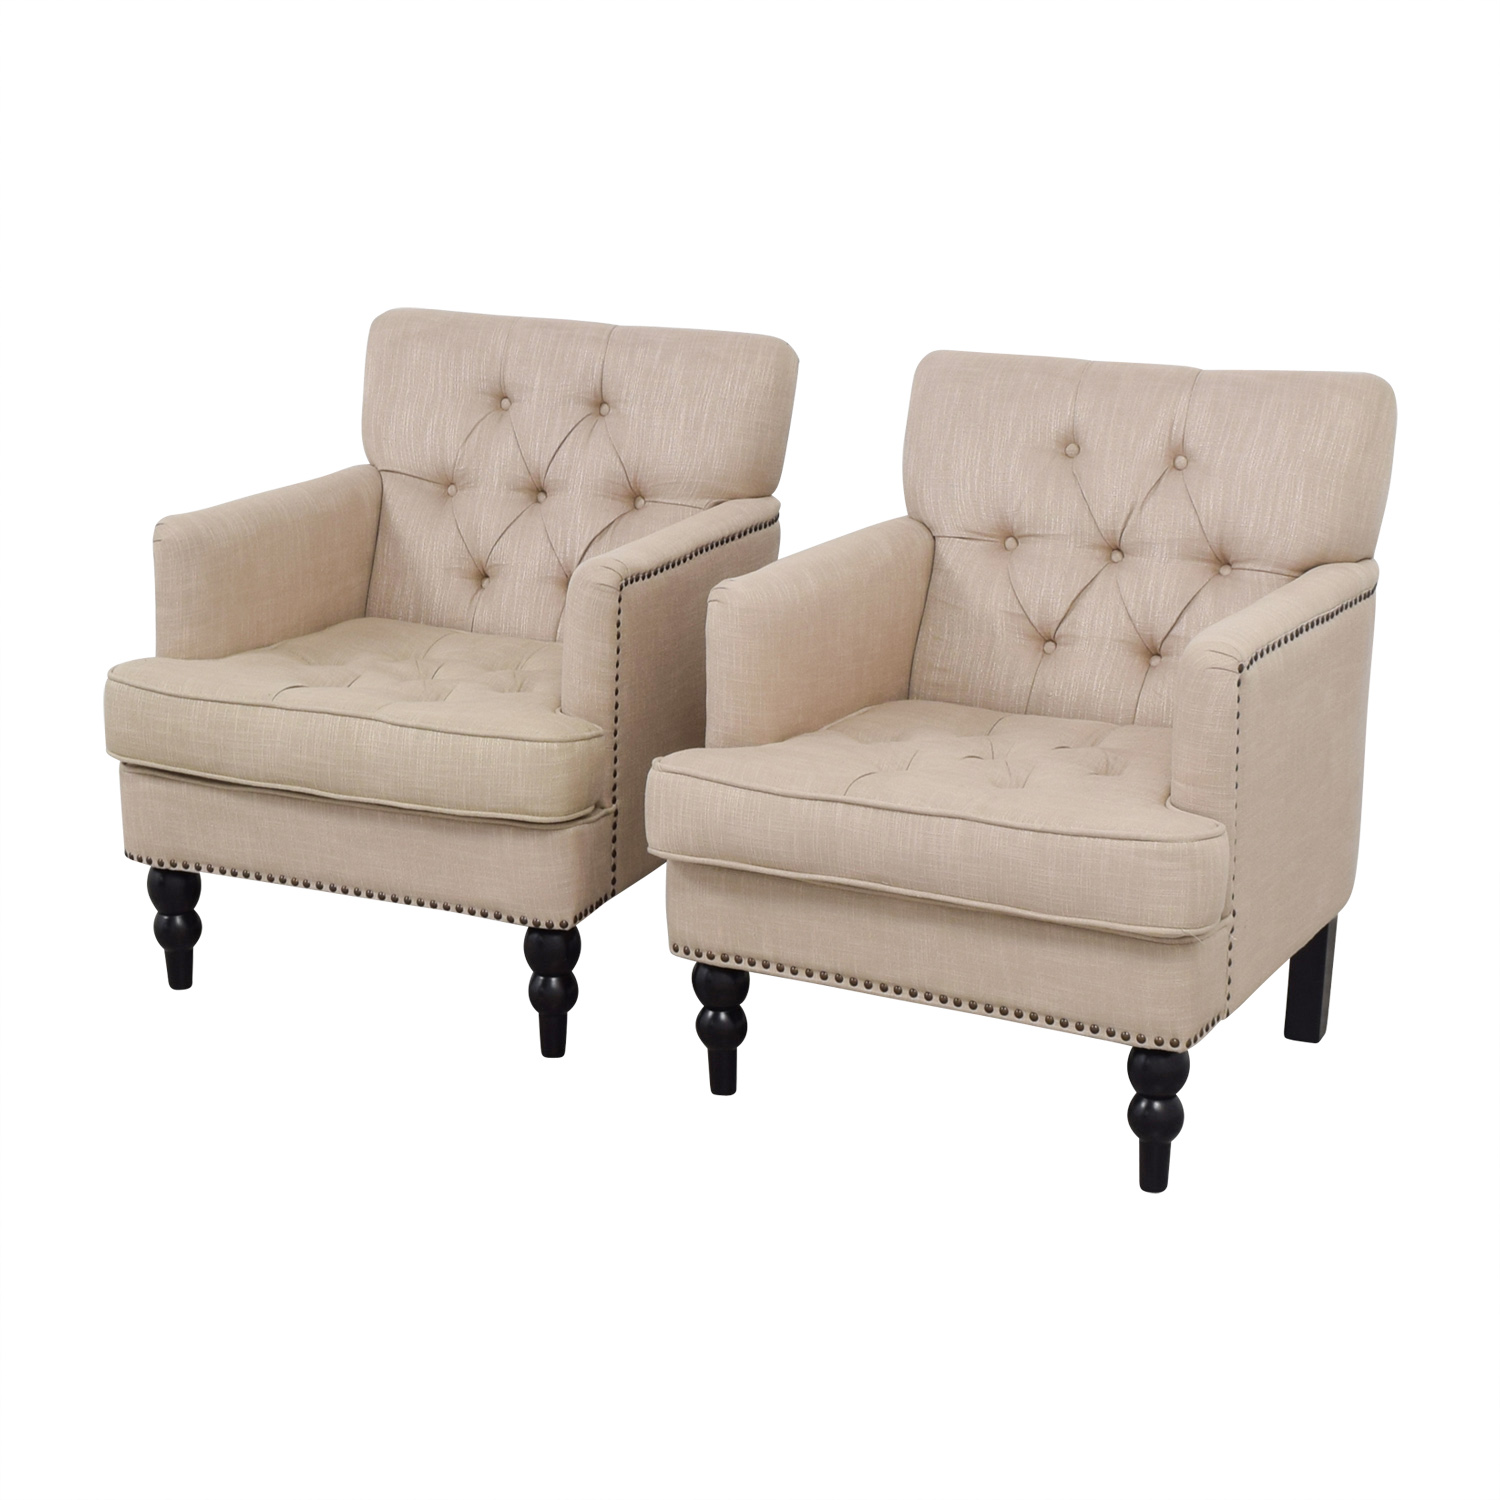 ... Great Deal Furniture Great Deal Furniture Medford Chair Second Hand ...